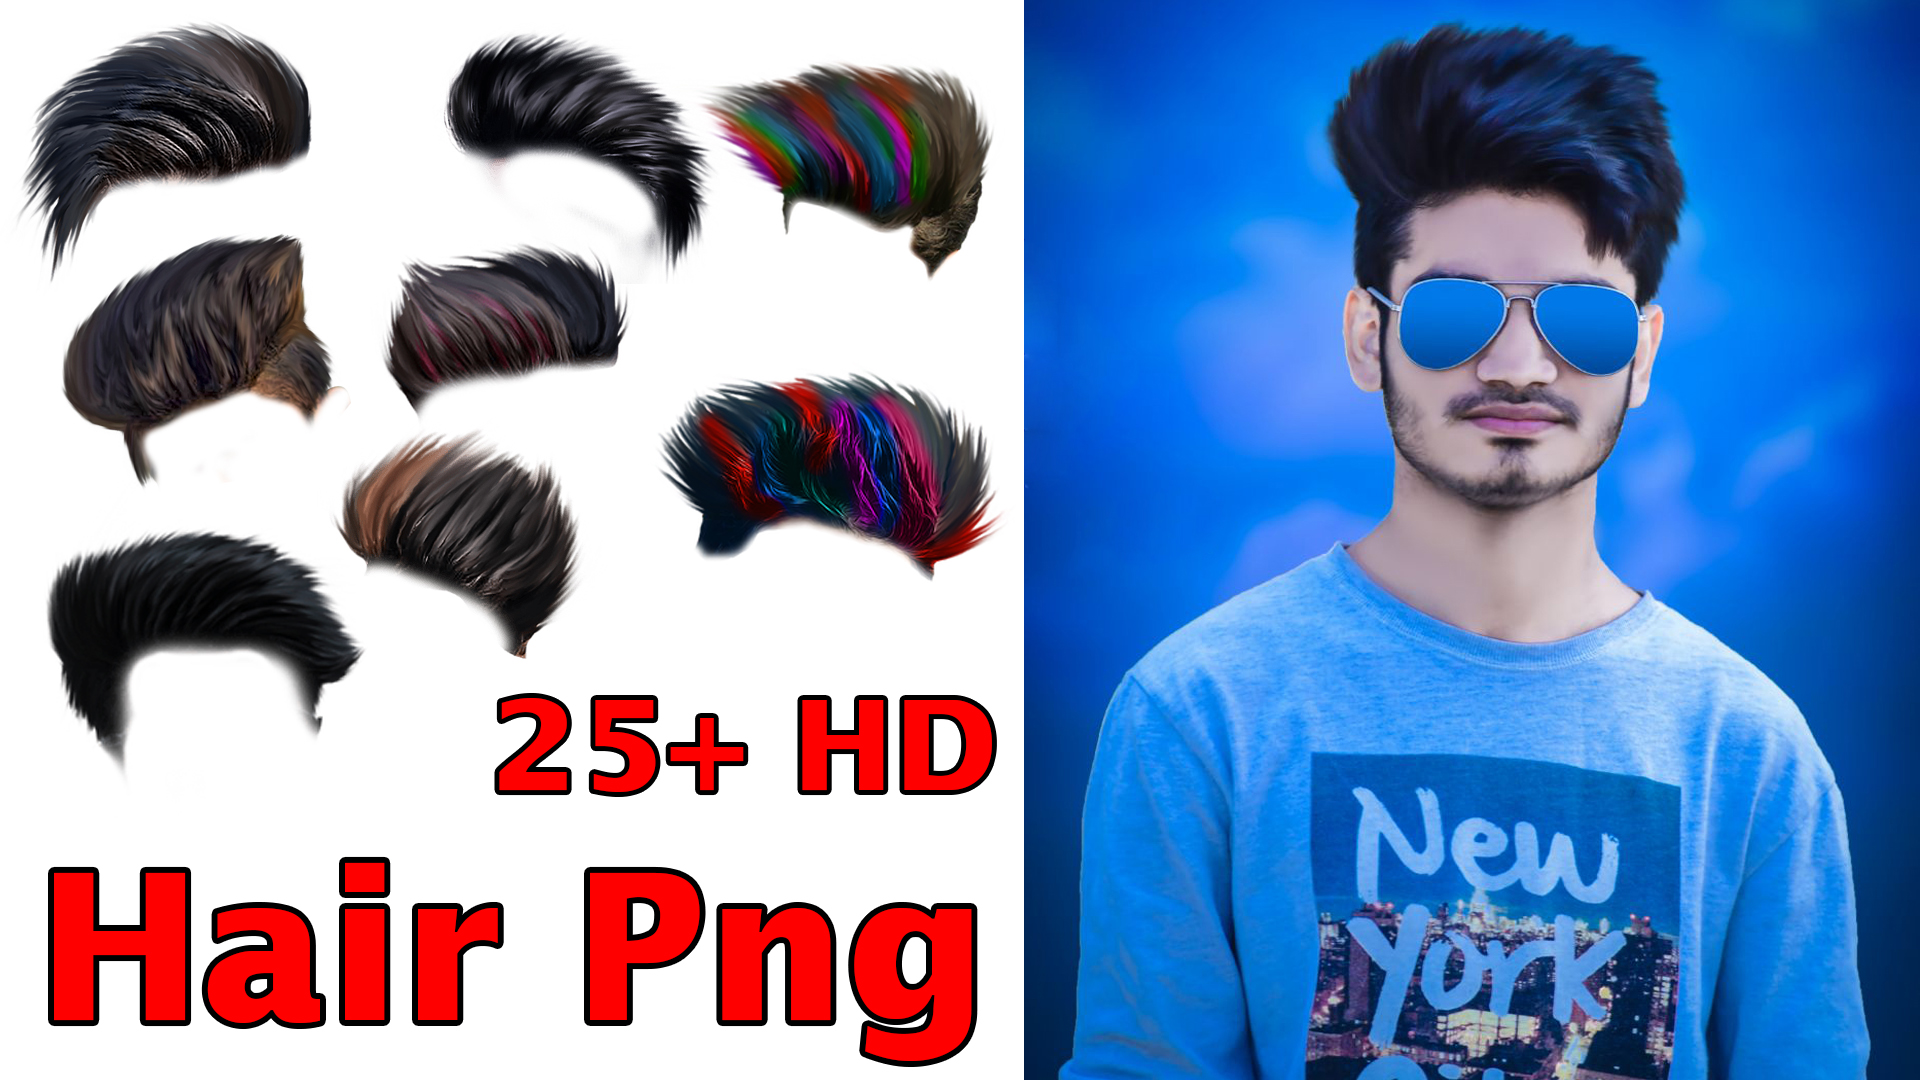 hair Png HD New